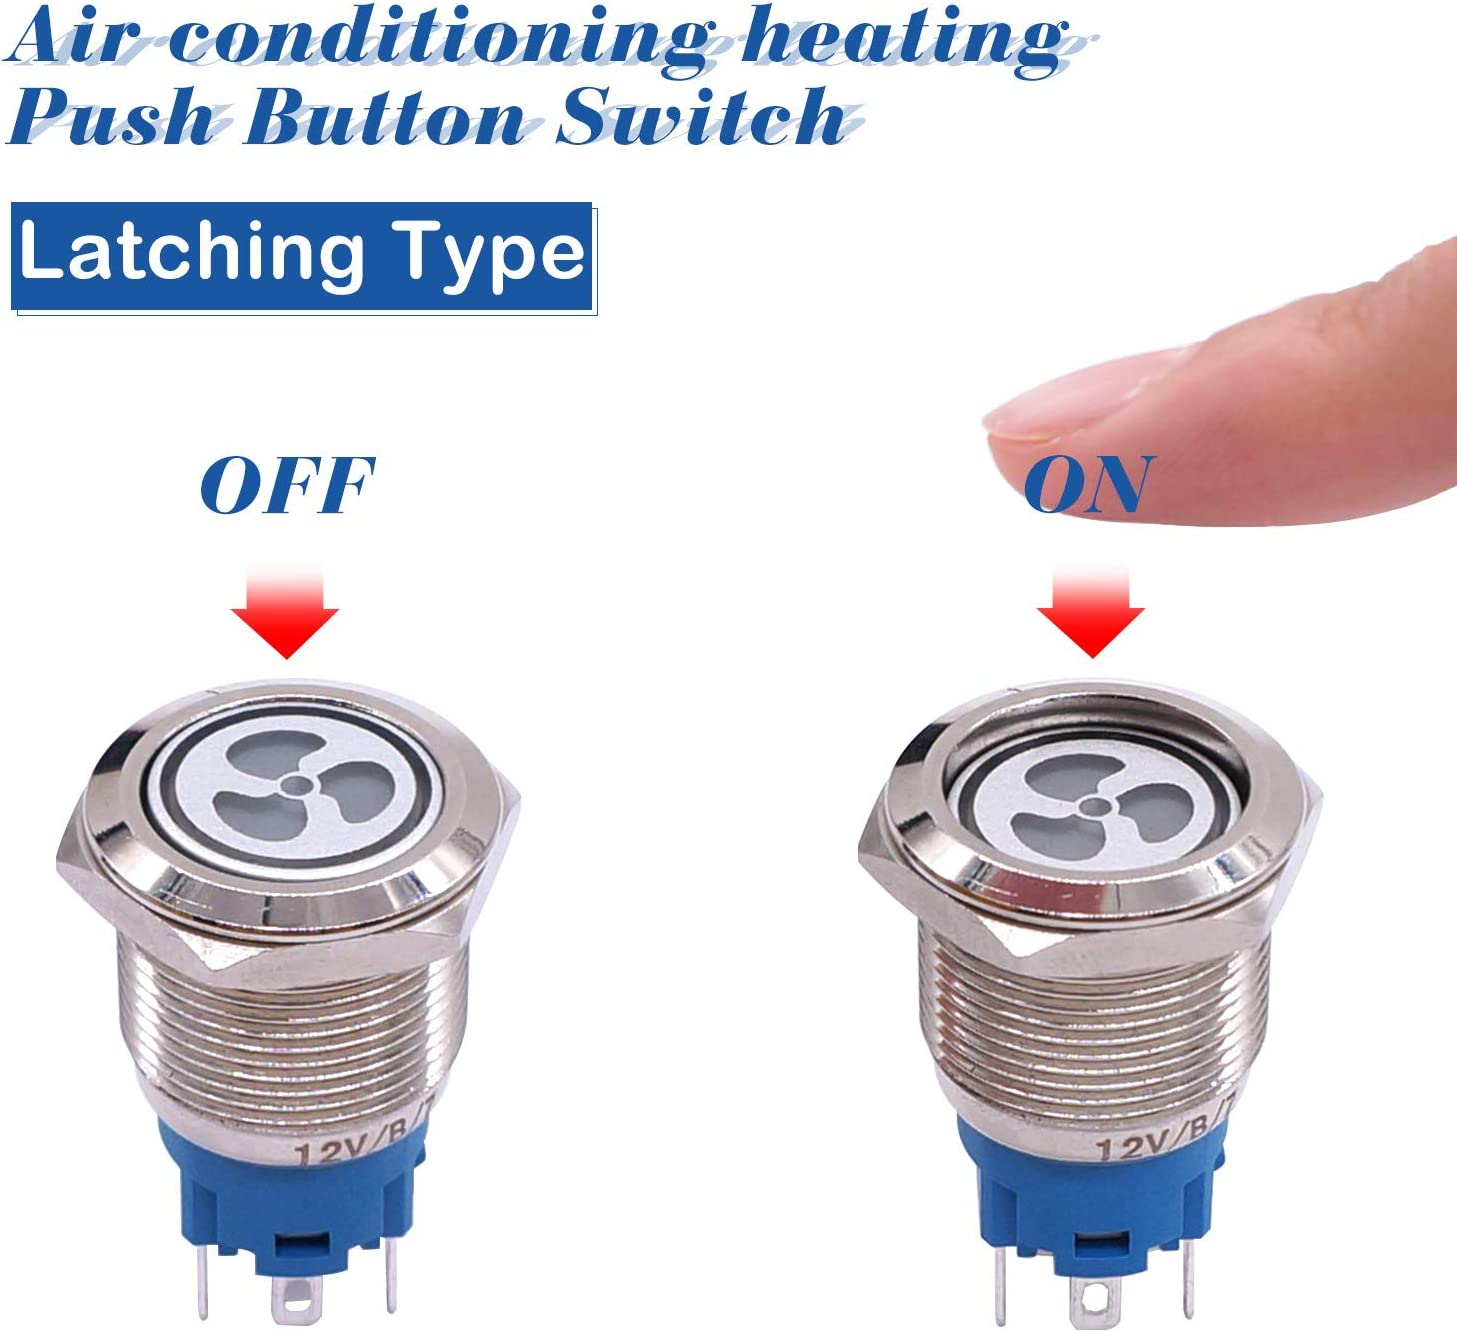 Taiss 12V 19mm Blue LED Illuminated Car Fan Push Button Switch 1NO 1NC 3//4 Mounting Hole Latching Type Silver Stainless Steel Metal Toggle Switch For Car Boat Part Modification TL19-FS-Bu